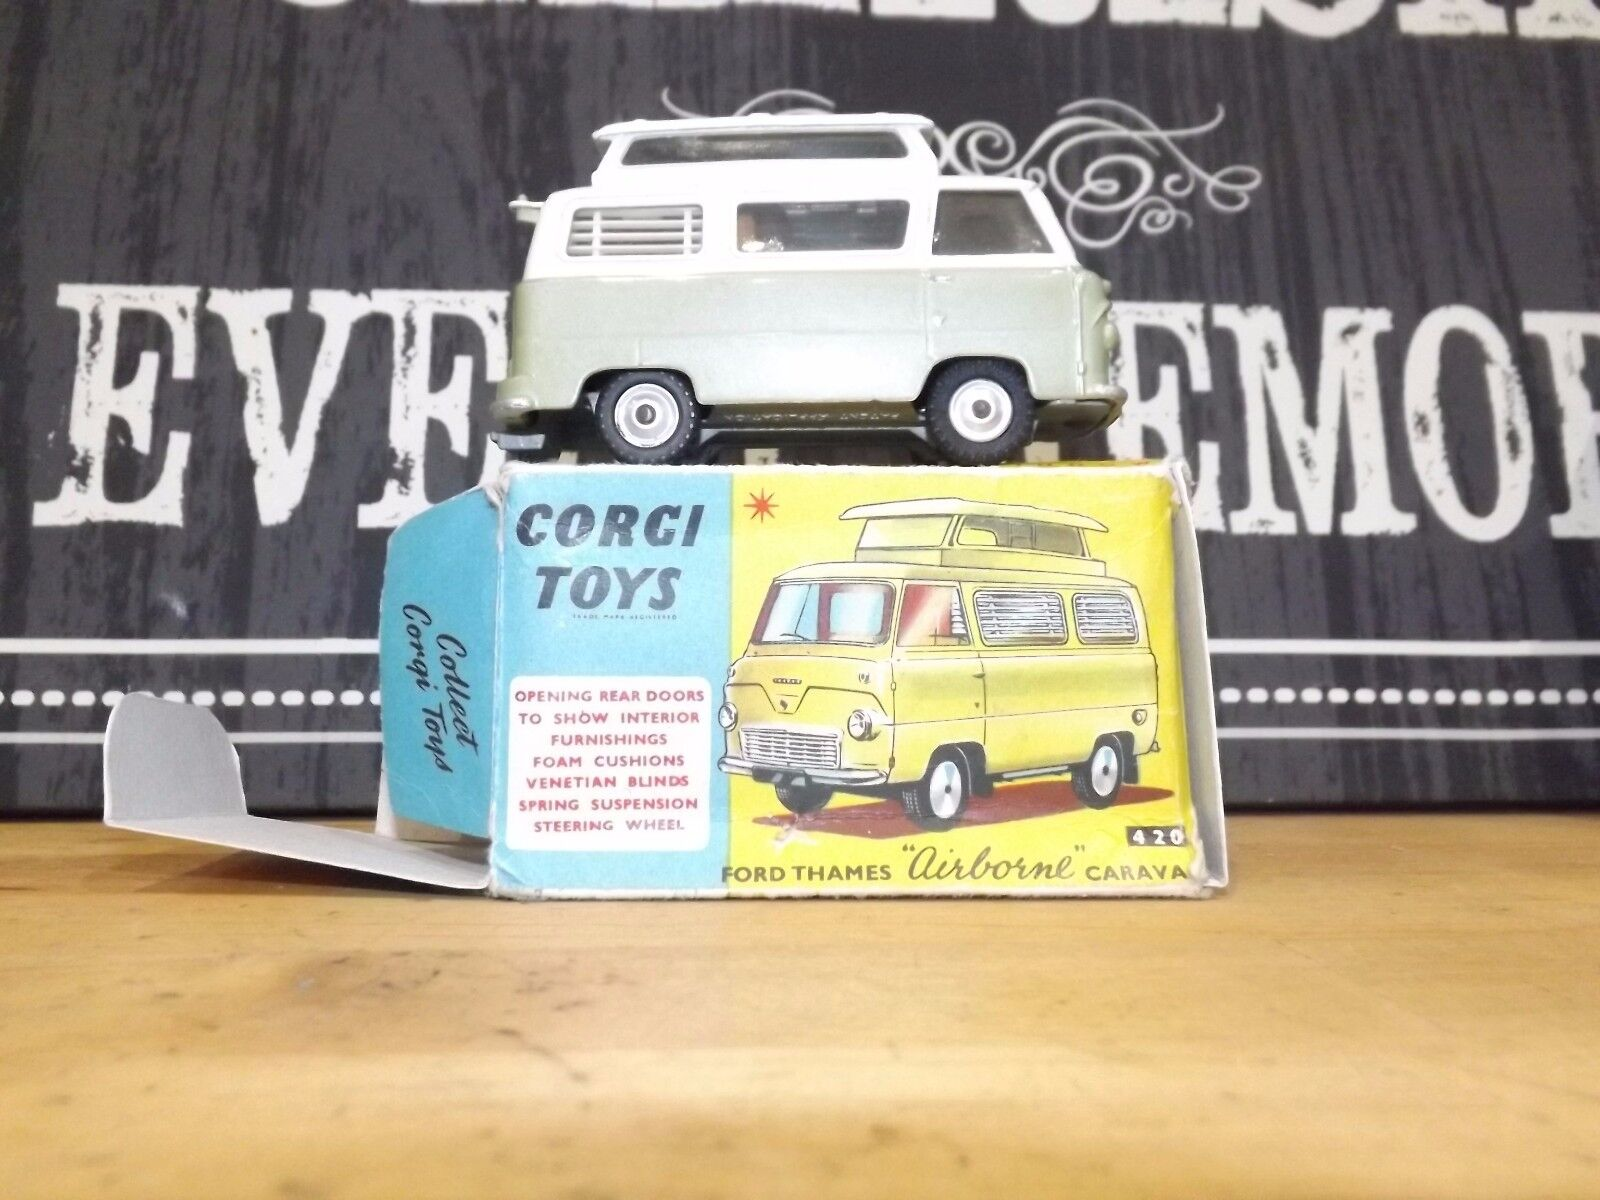 CORGI 420 Ford Thames  AIRBORNE  caravane Comme neuf CONDITION BOXED